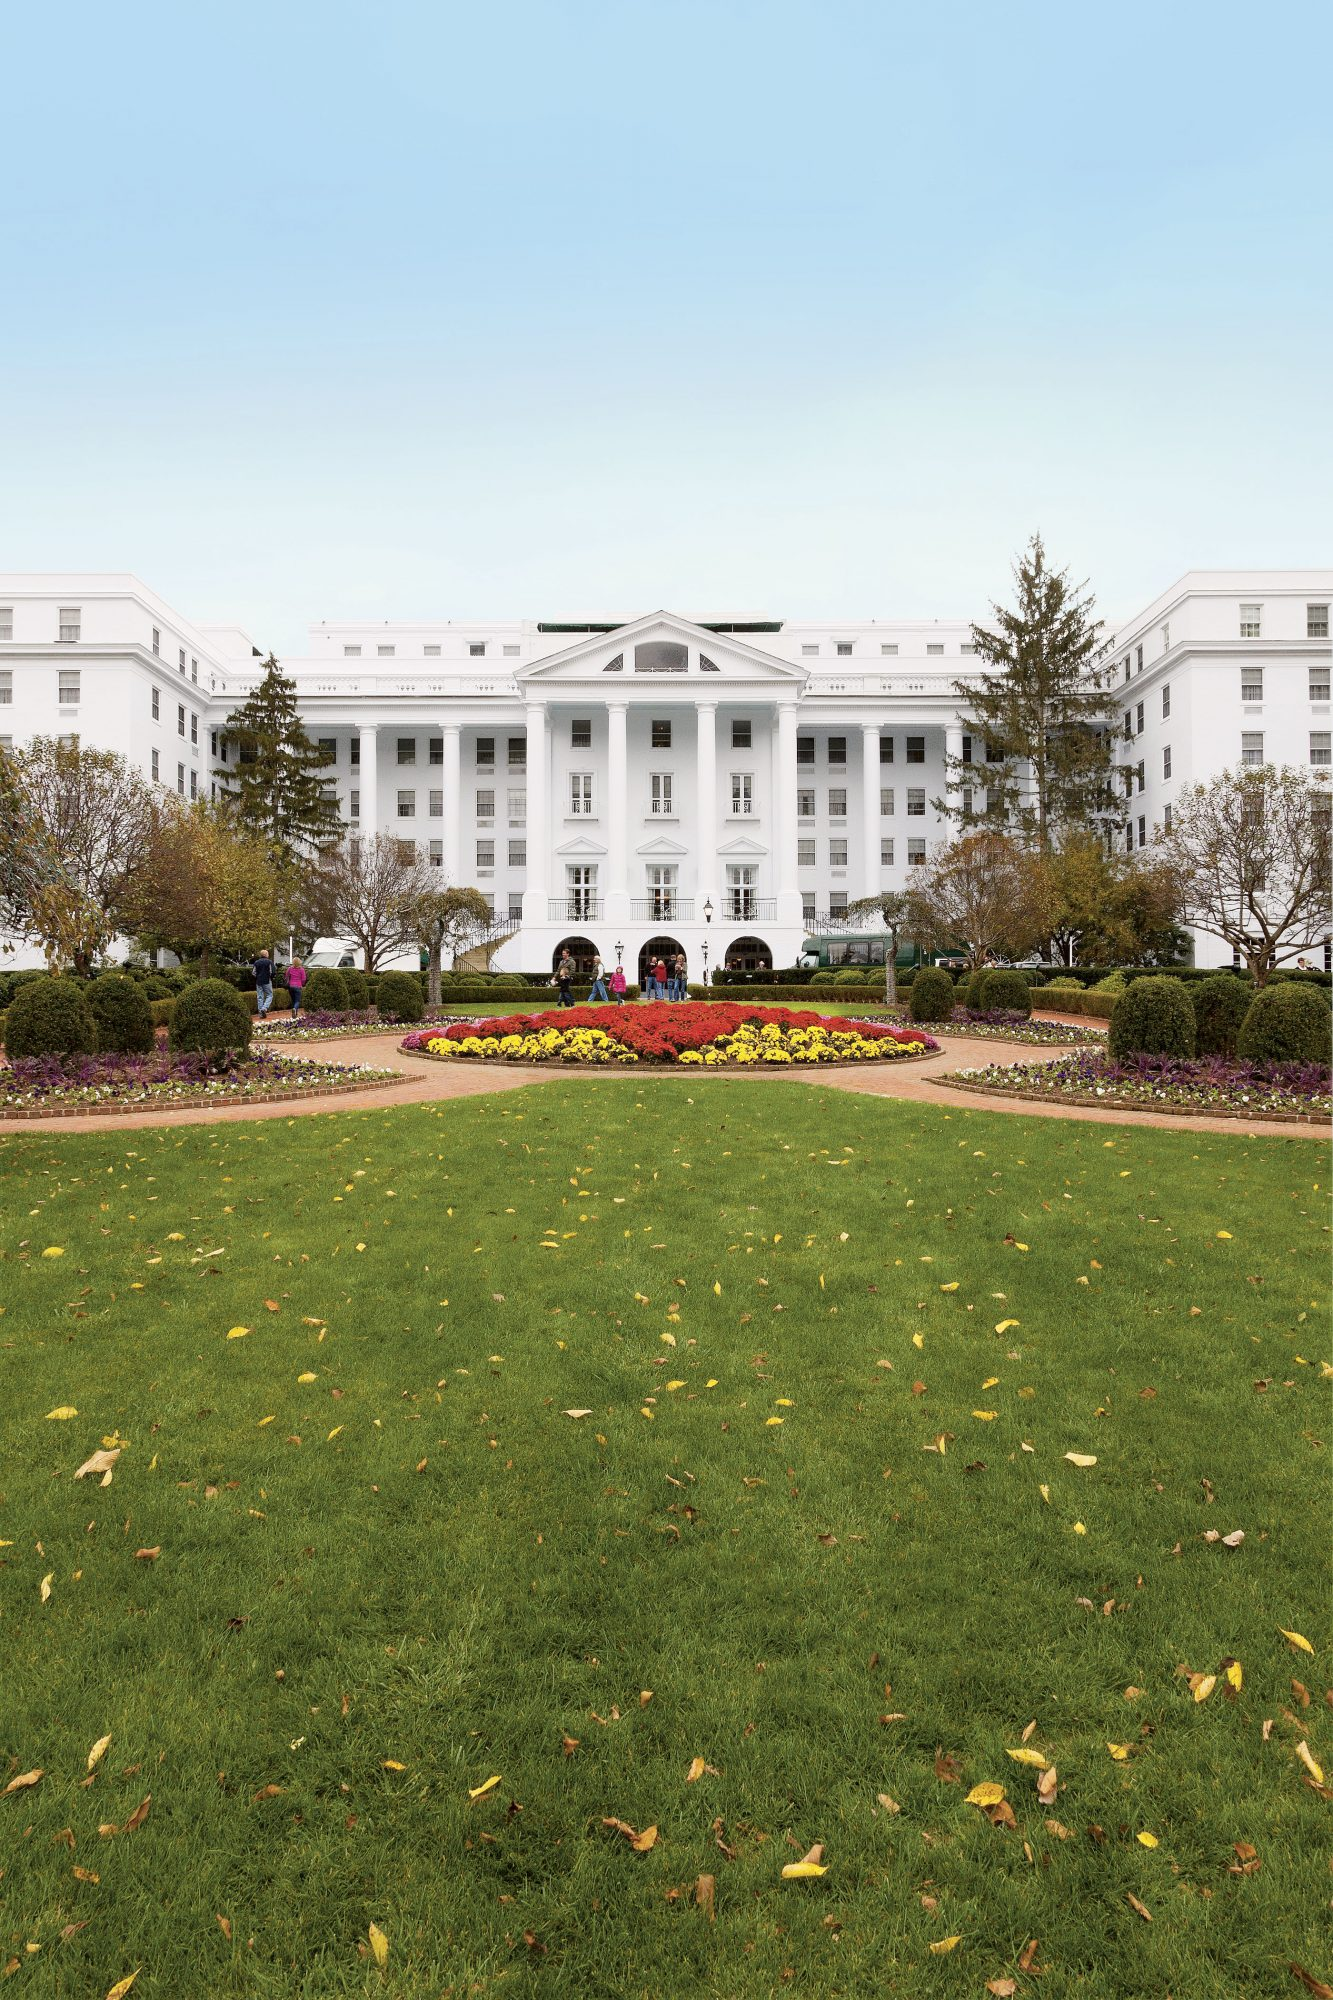 4. The Greenbrier (White Sulphur Springs, West Virginia)